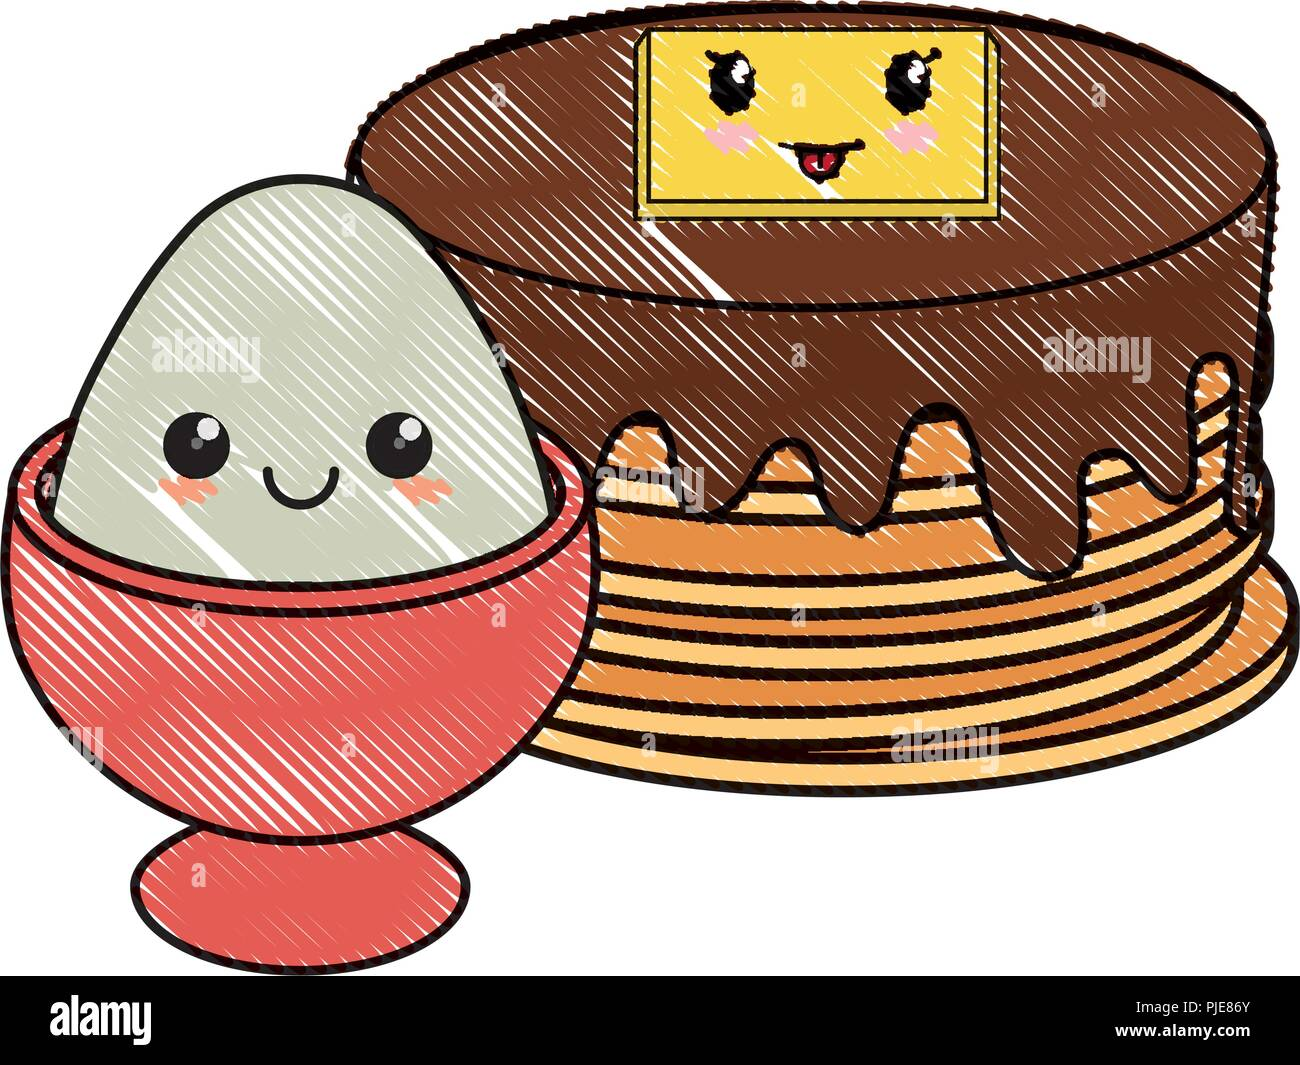 kawaii pancakes and egg over white background, vector illustration - Stock Image